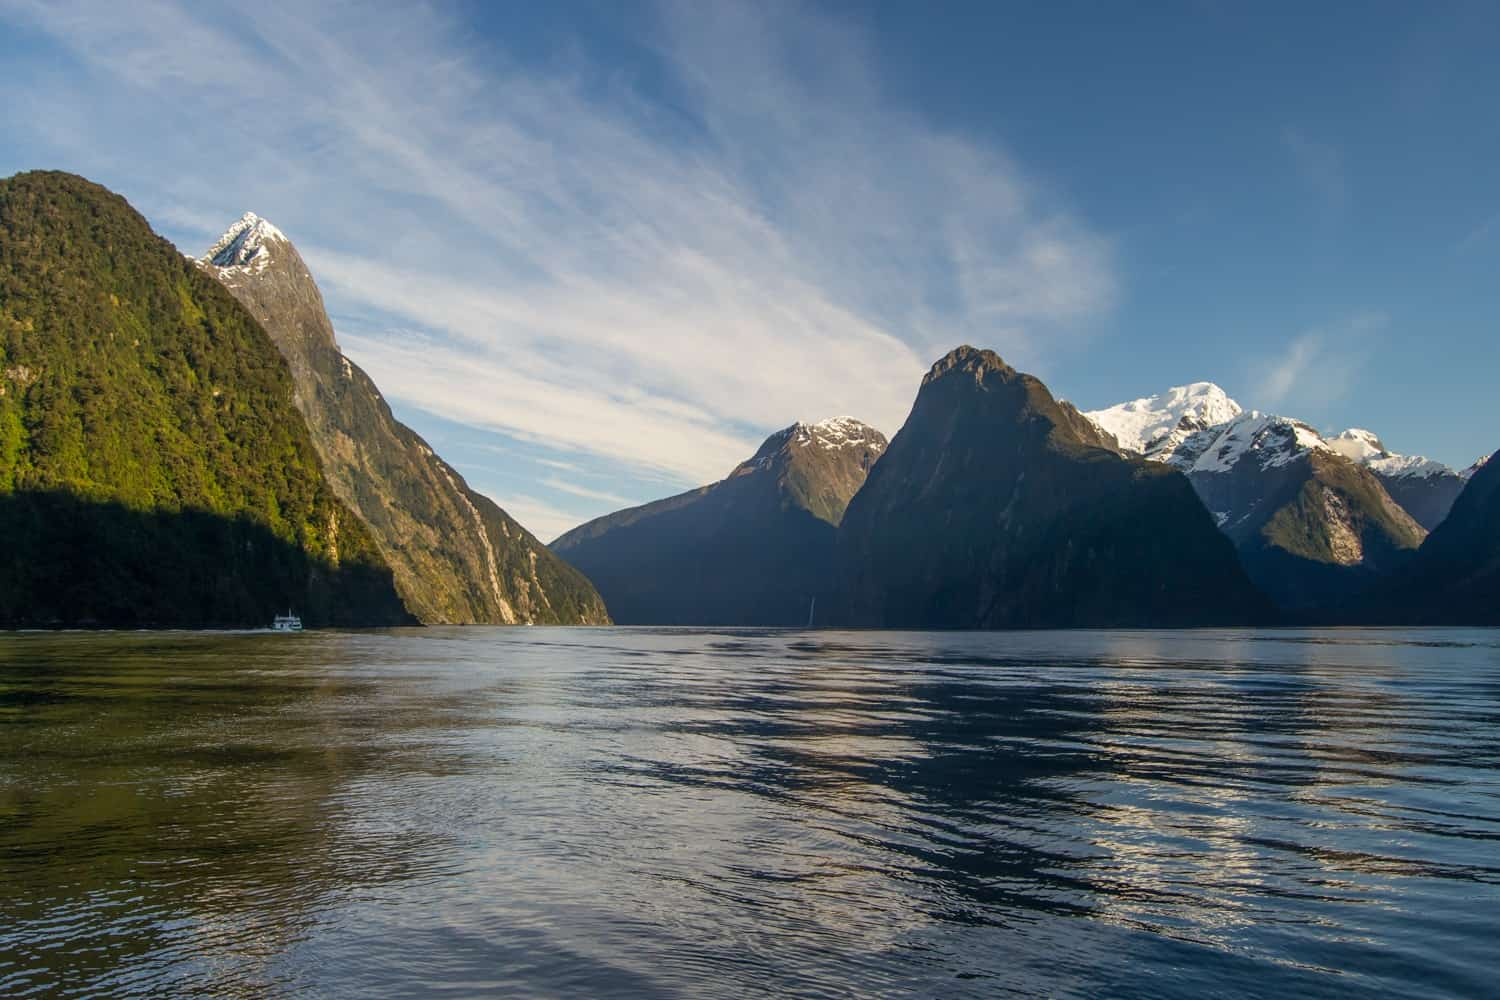 Milford Sound Cruise Experience, New Zealand 2